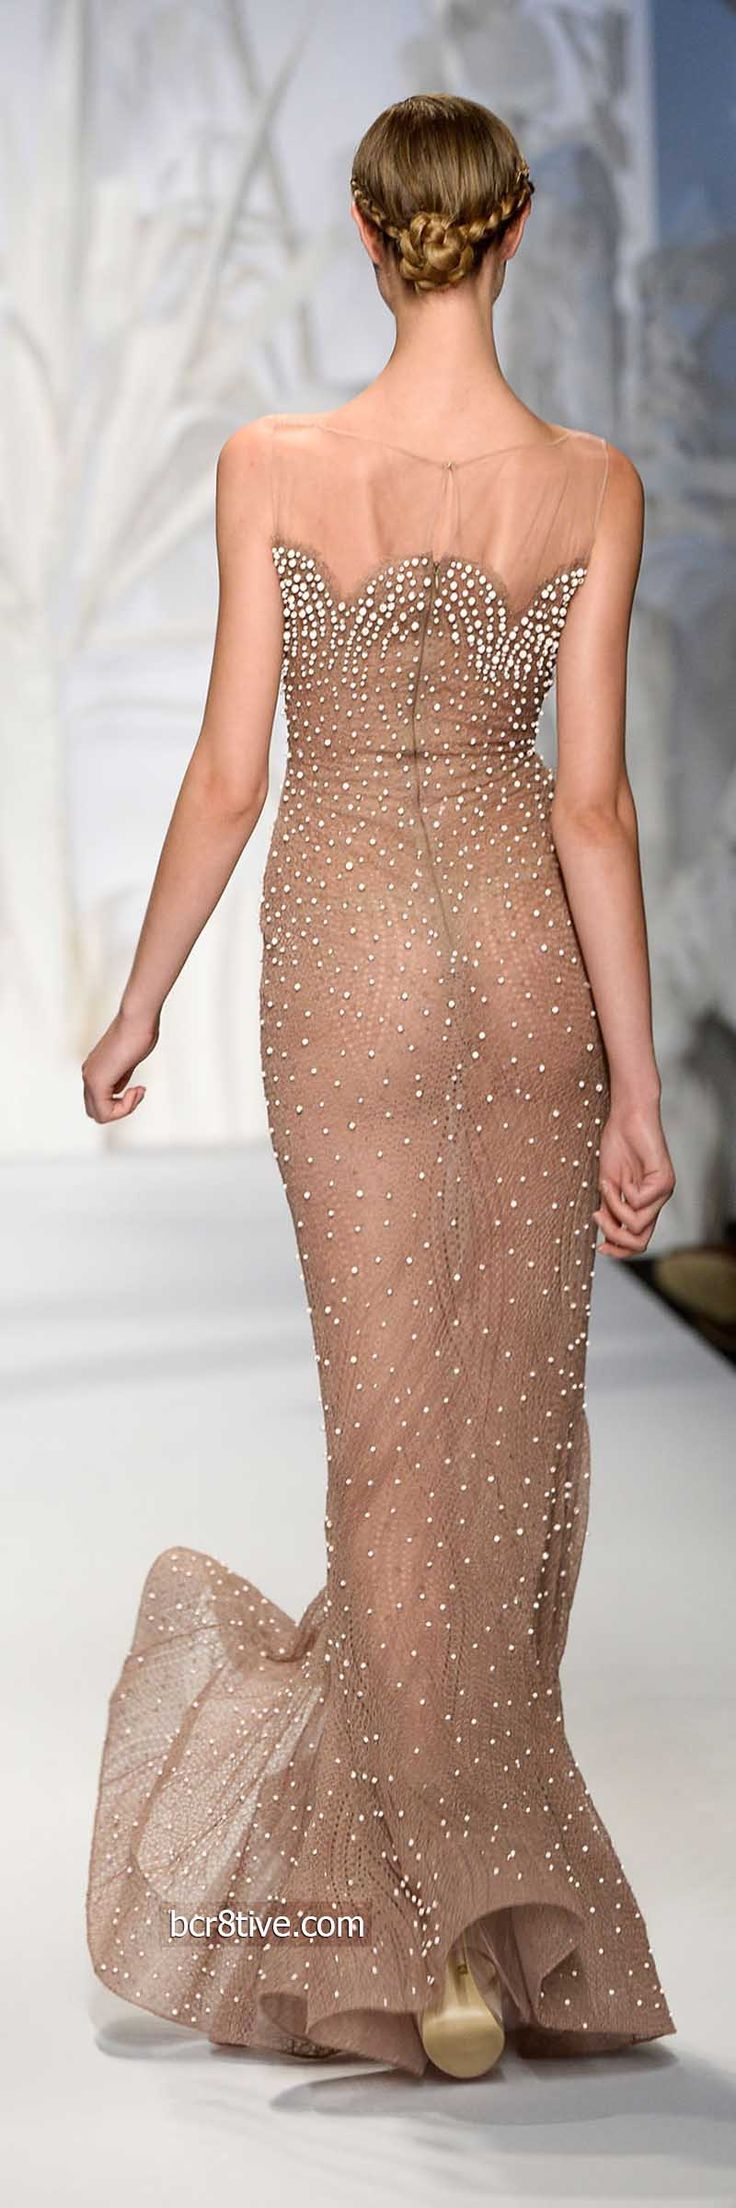 Abed Mahfouz Fall Winter 2014 Haute Couture ★ COMPLETE COLLECTION on ABED MAHFOUZ BOARD ★